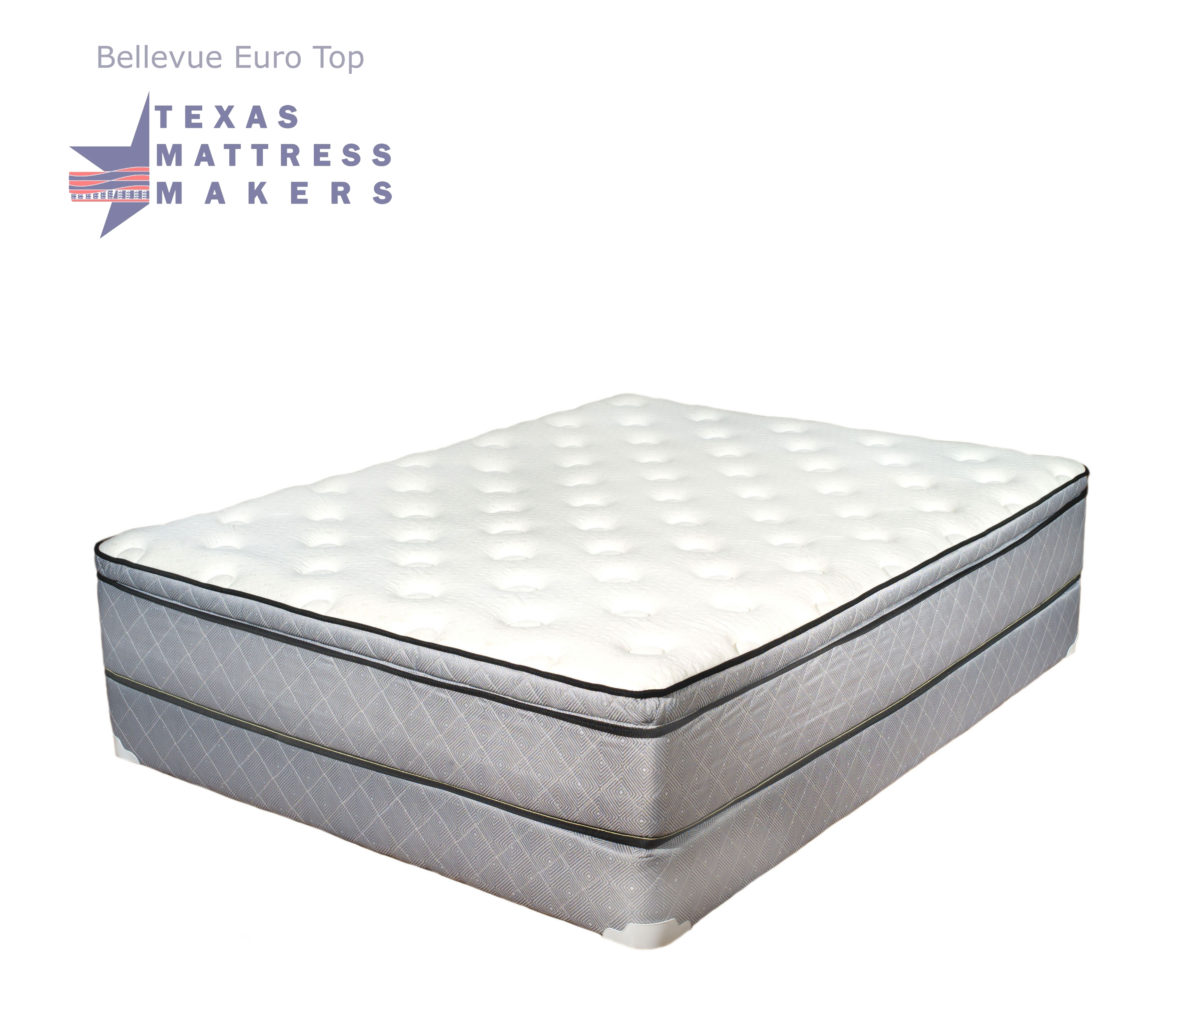 Bellevue Euro Top Mattress Innerspring Texas Mattress Makers